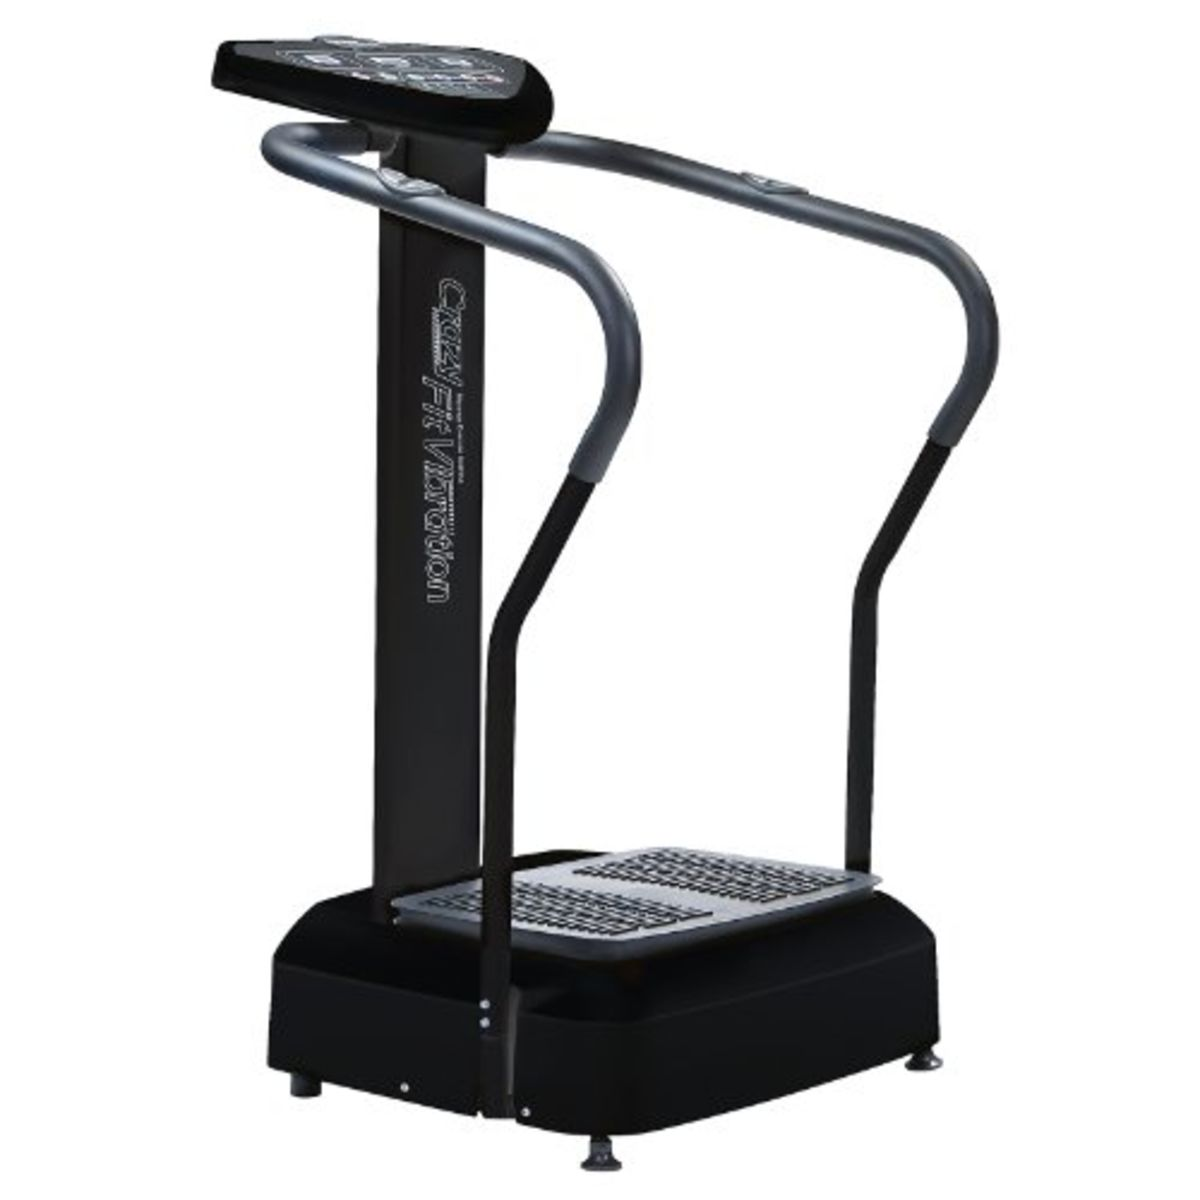 Headline for Top 10 Best Selling Vibration Machines